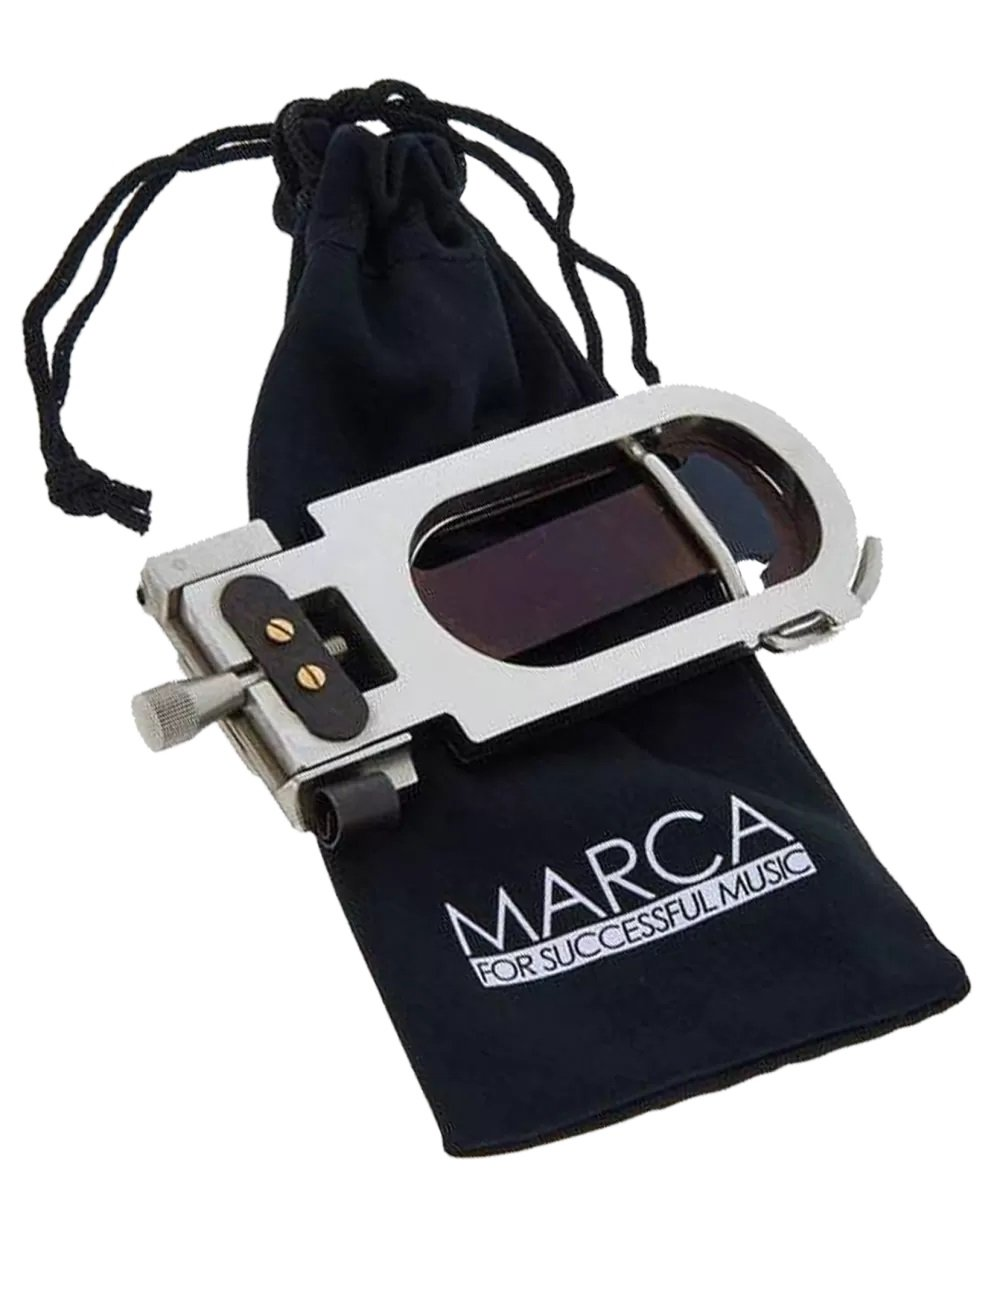 Marca RT4 Cordier Reed Trimmer, Alto Saxophone